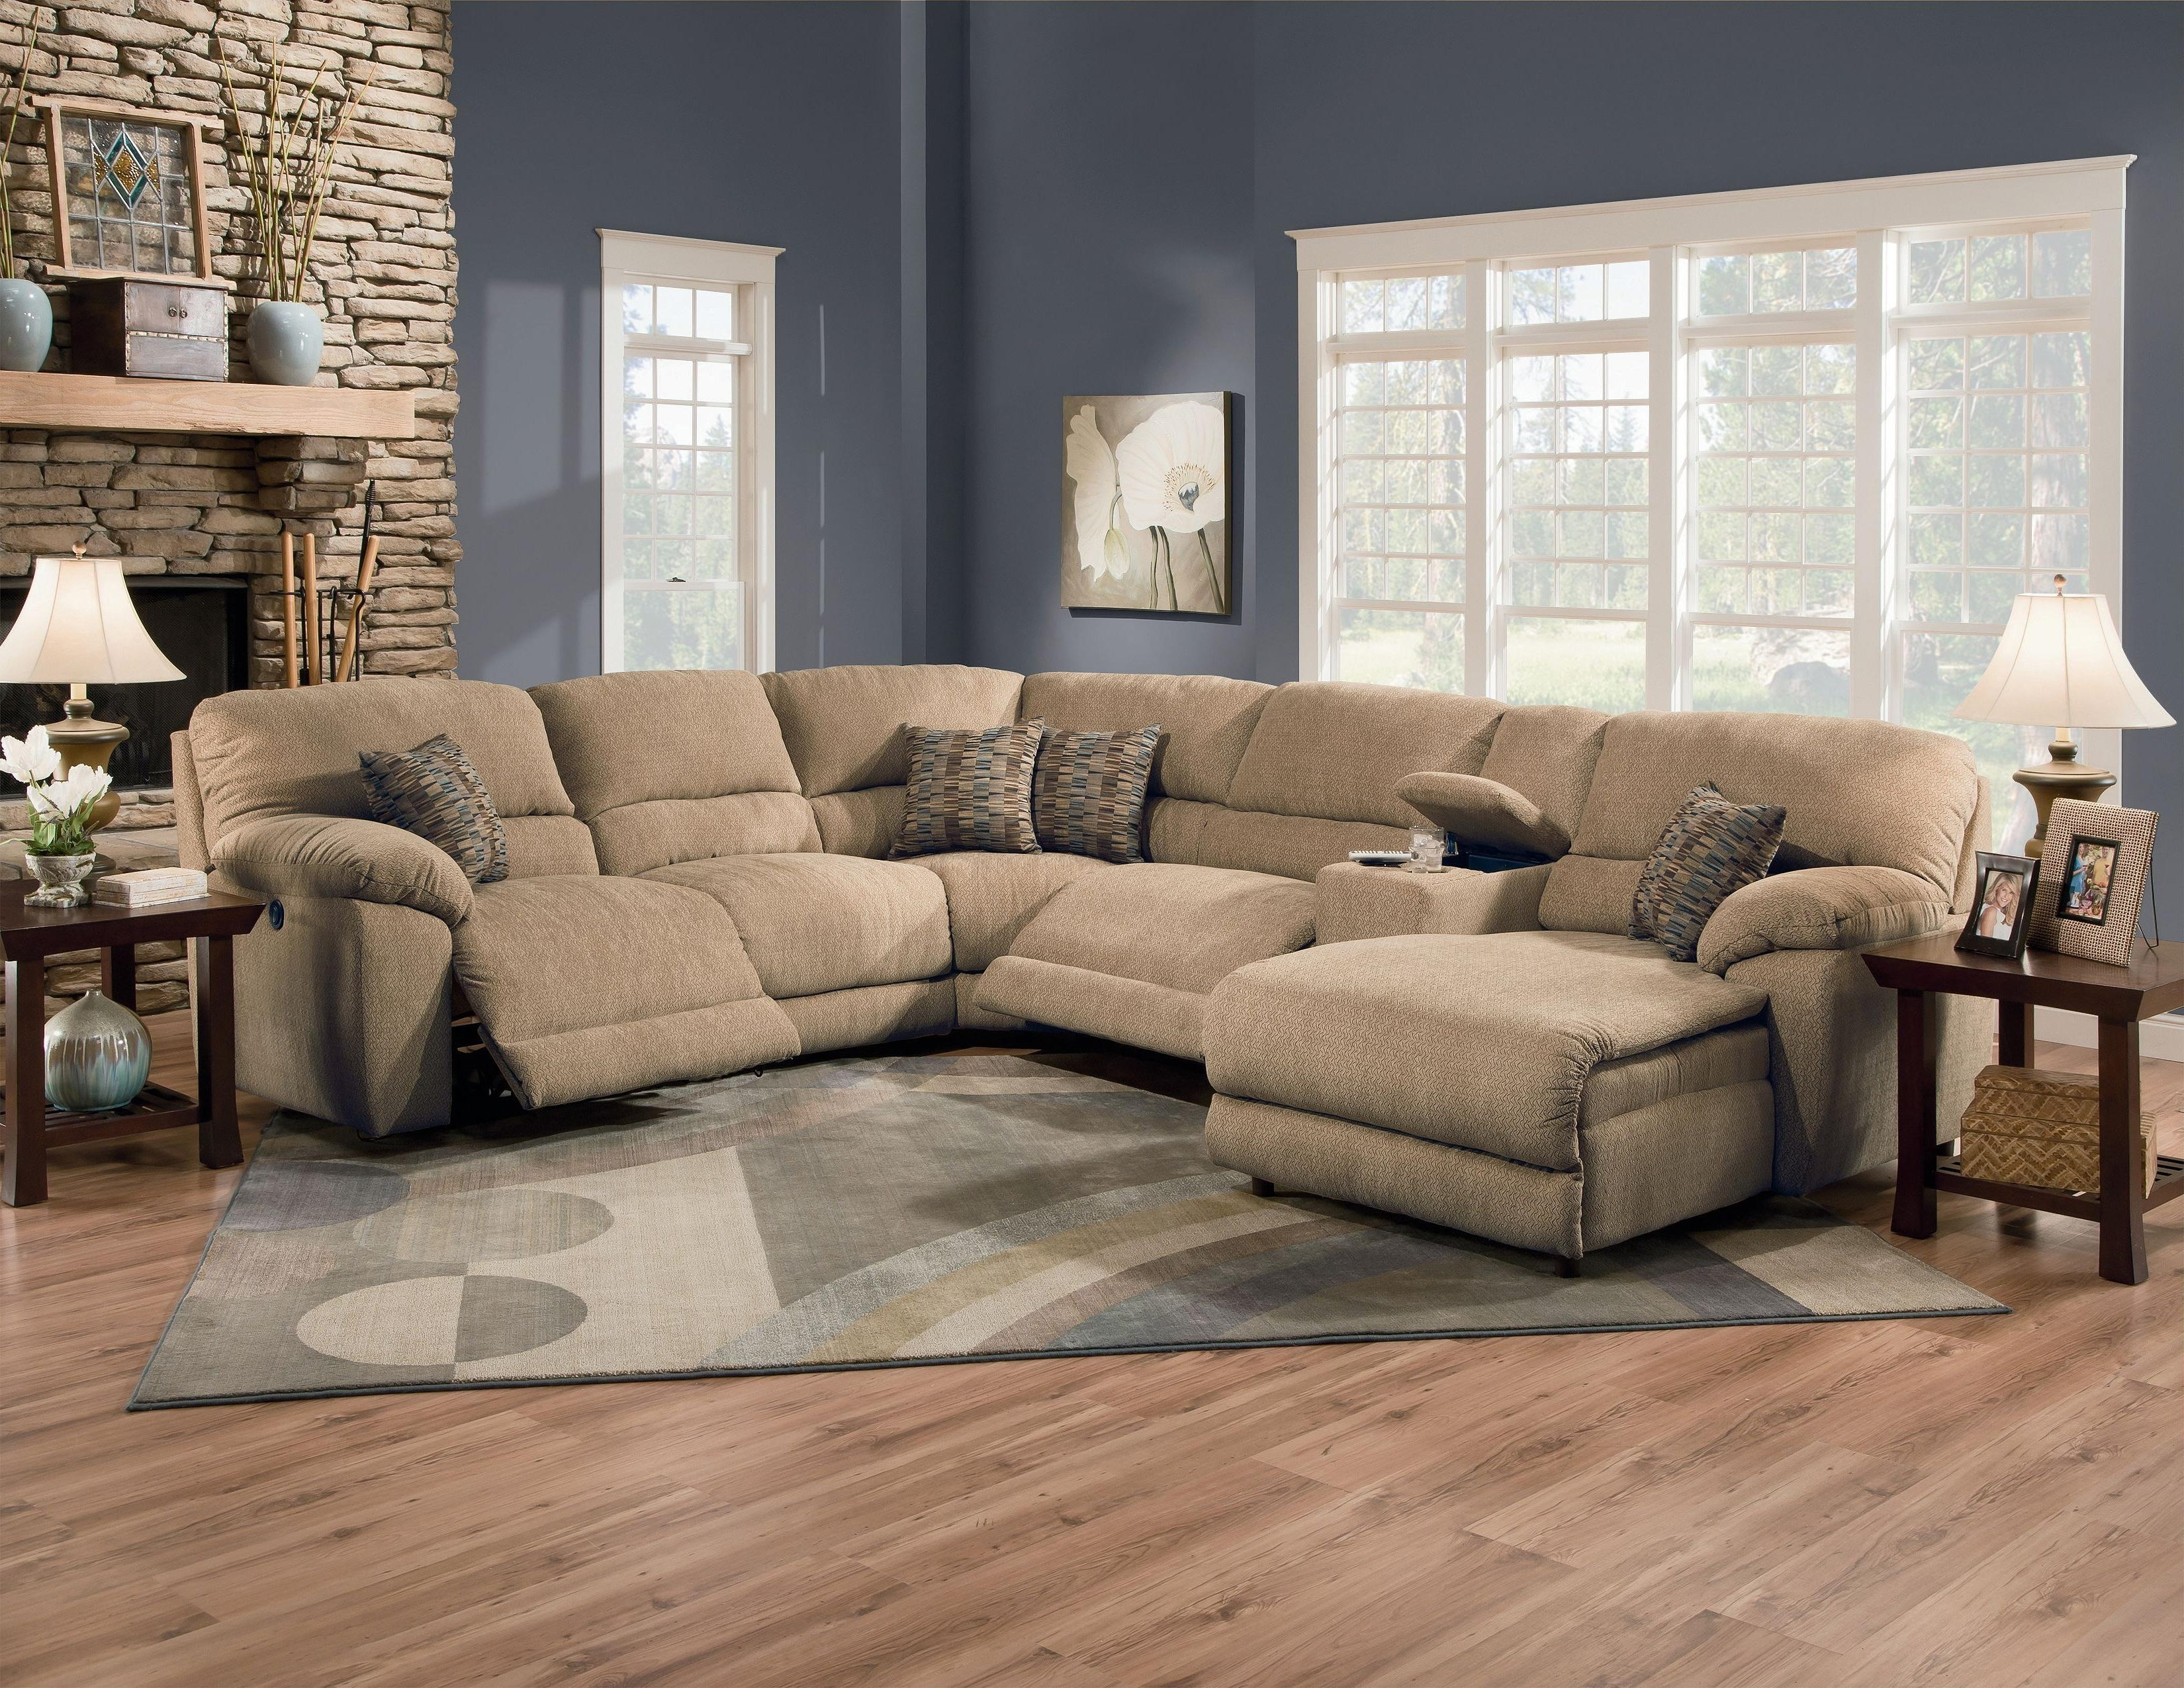 Famous Nashville Sectional Sofas With Lane Furniture: Rivers Collection Featuring Power Reclining (View 15 of 15)